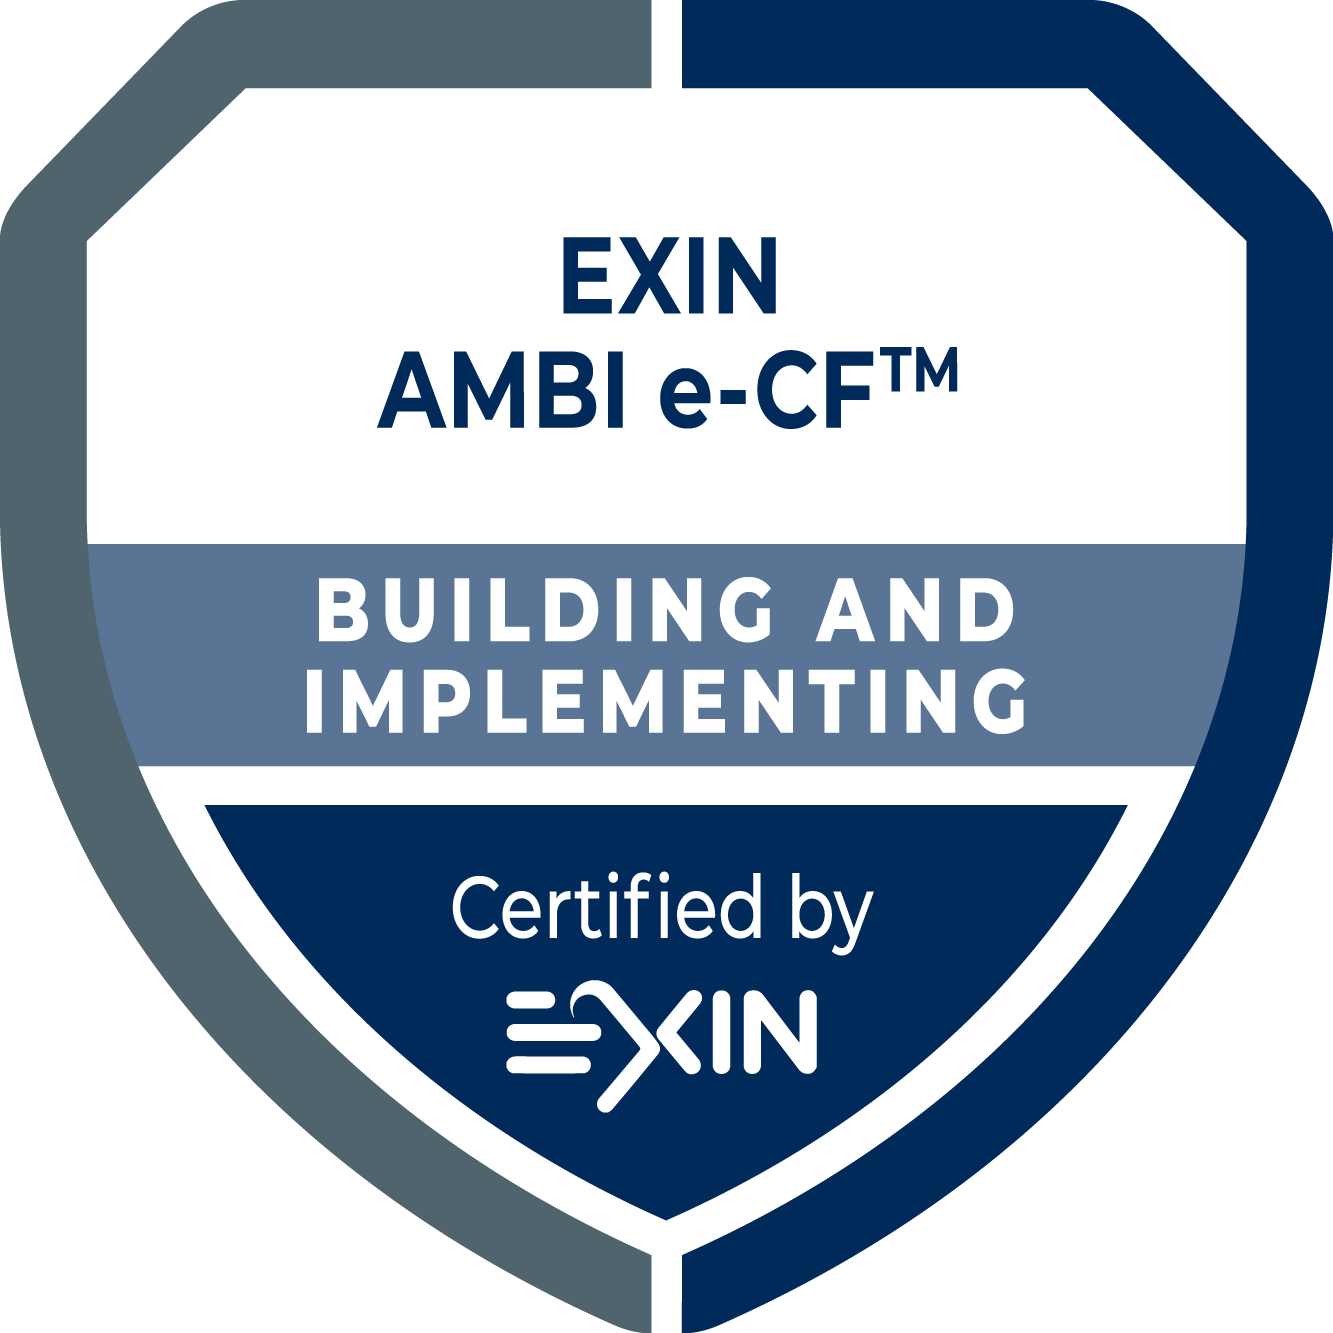 EXIN AMBI e-CF®: Building and Implementing